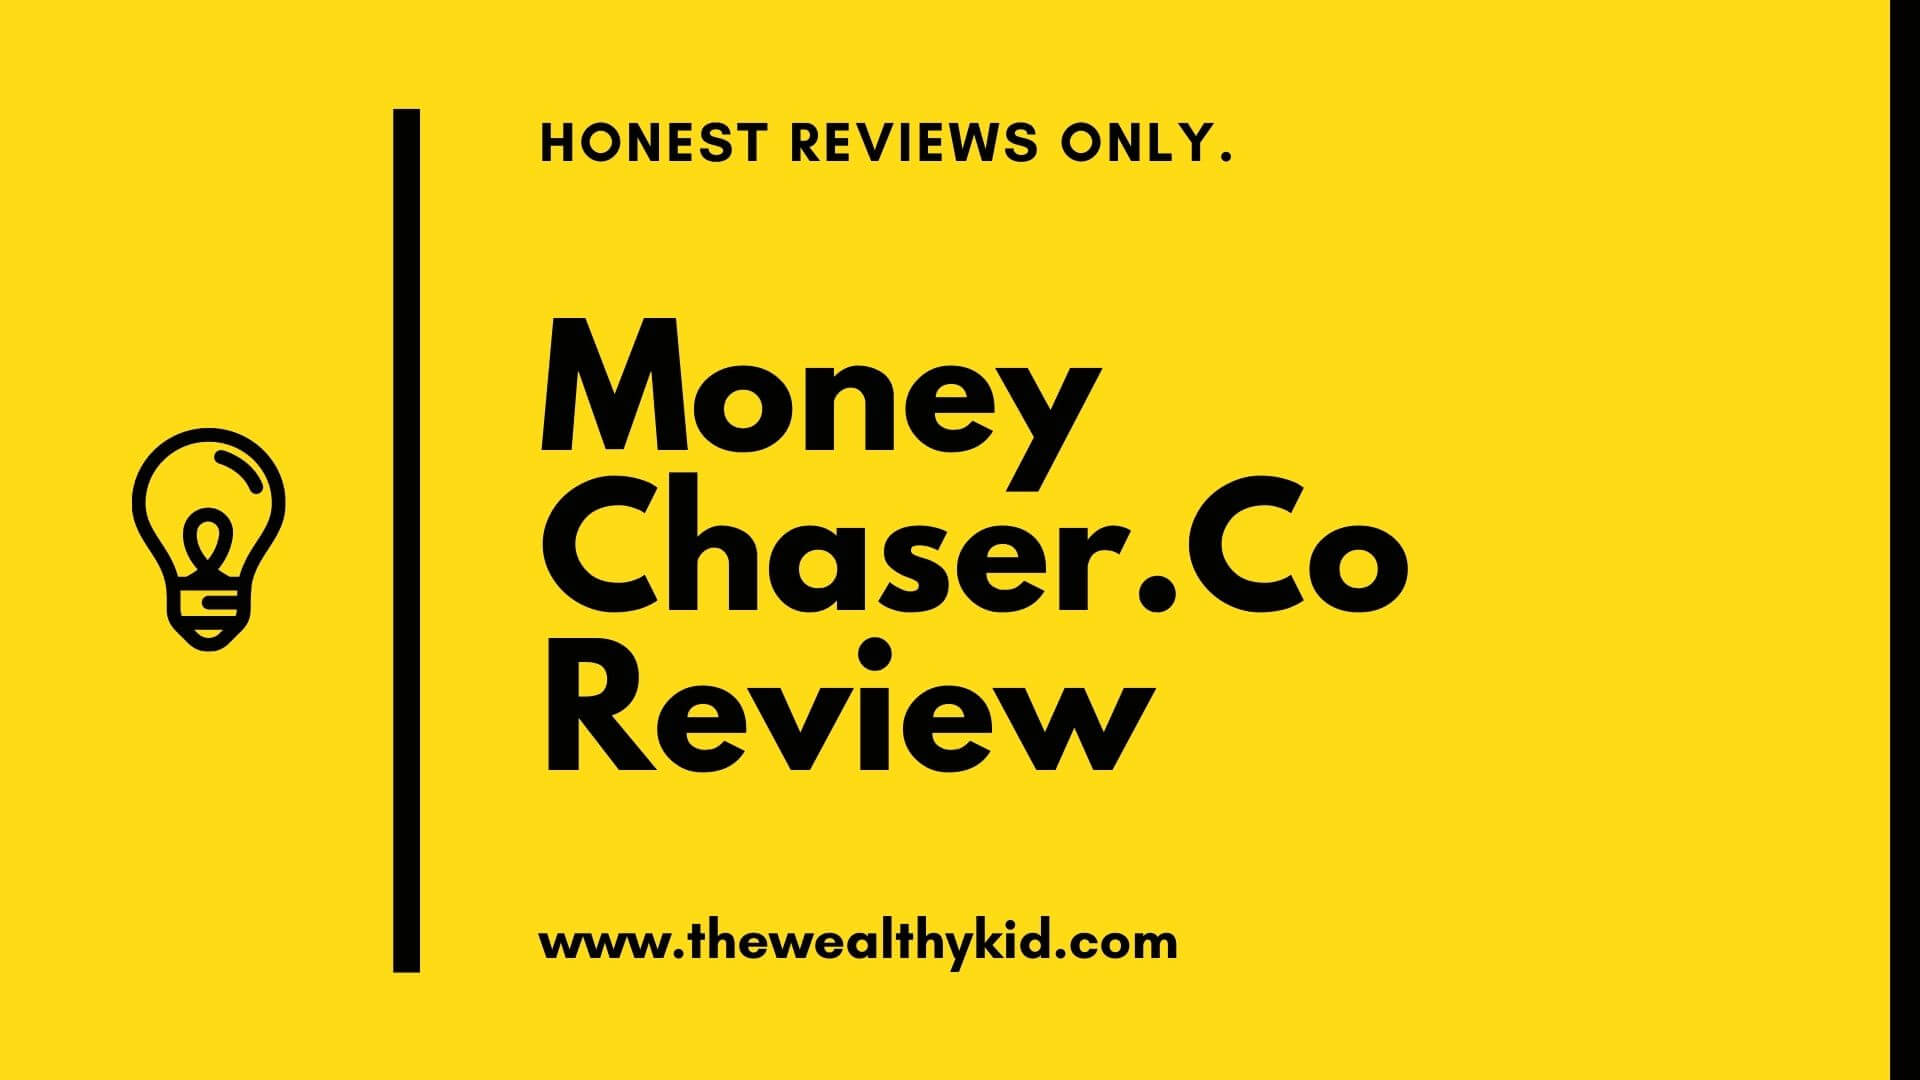 what is MoneyChaser.Co